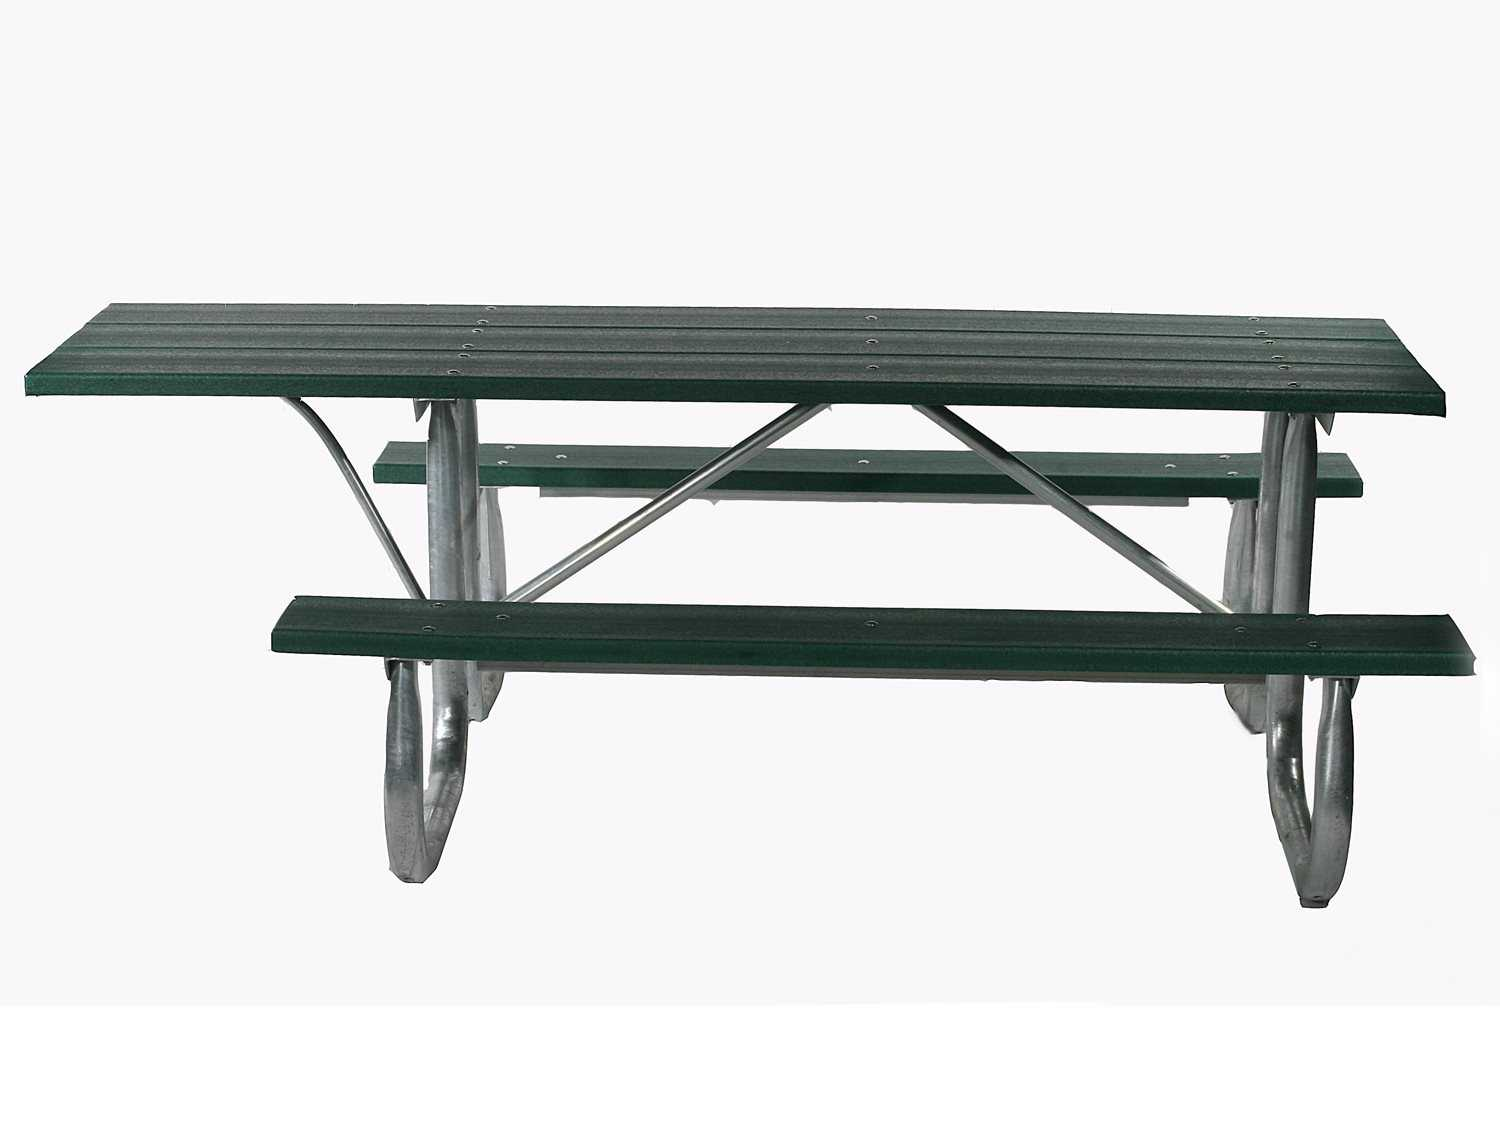 Image Result For Heavy Duty Picnic Tables